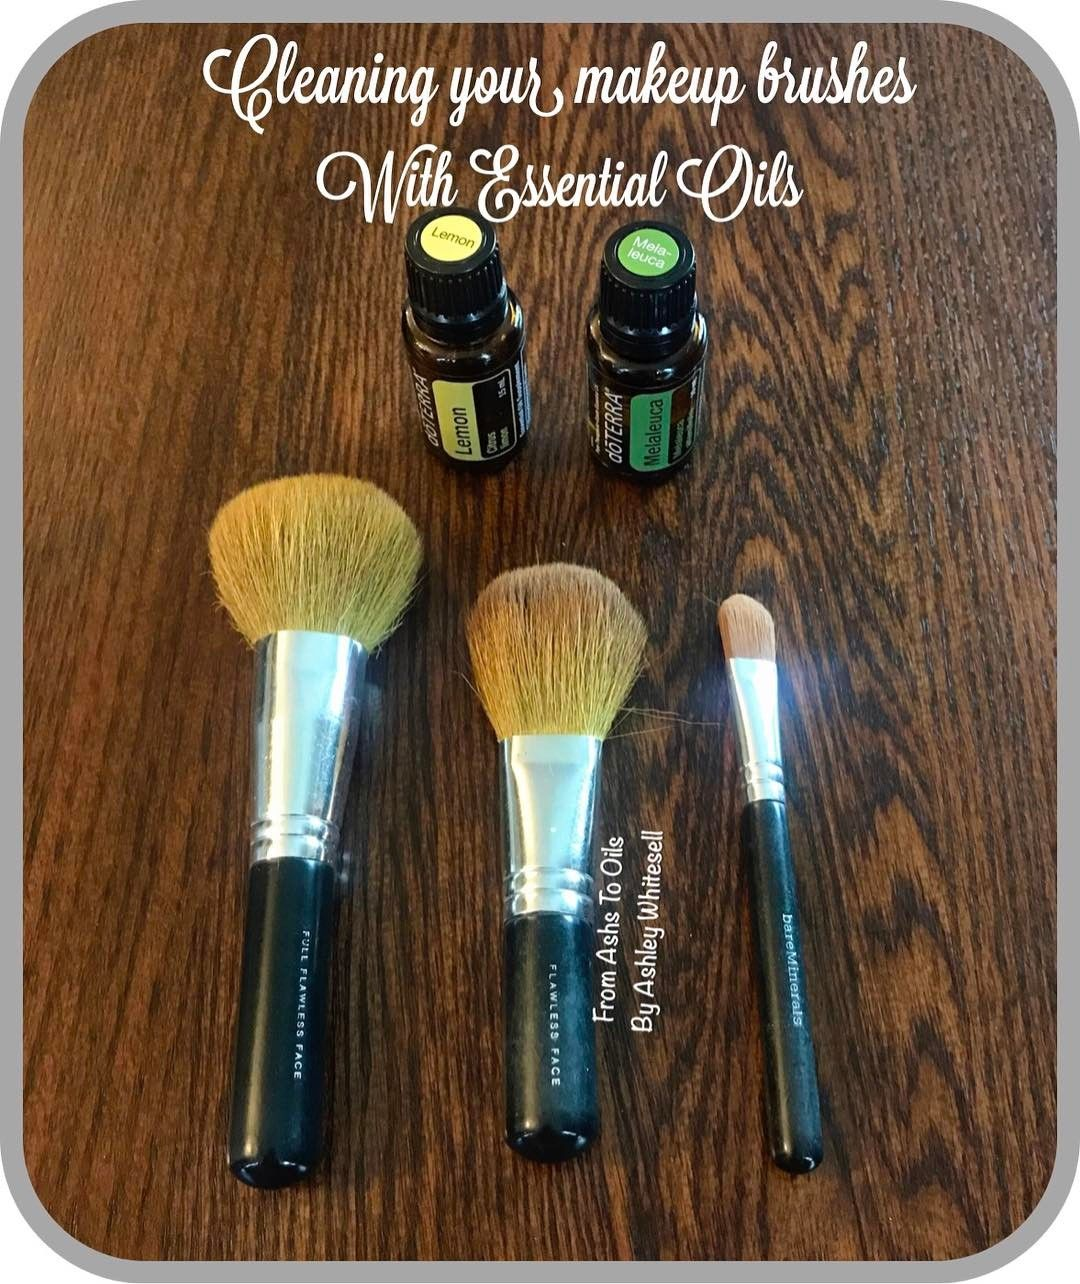 Pin by Ashley Whitesell on doTERRA DIY Essential makeup